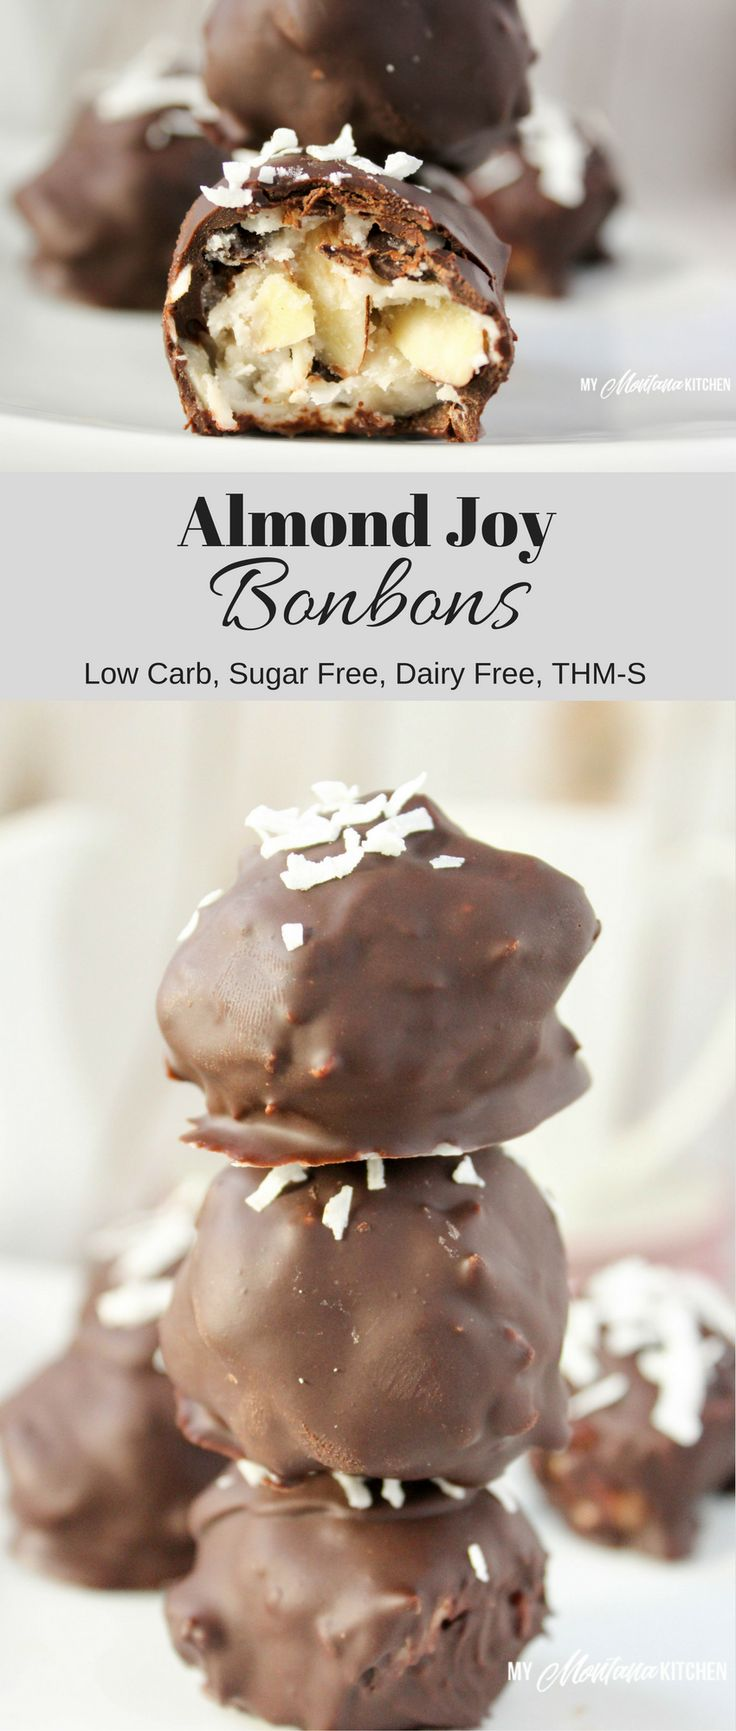 Low Carb Almond Joy Bonbons (Sugar Free, Dairy Free, THM-S) #trimhealthymama #thm #sugarfree #lowcarb #dairyfree #glutenfree #thm-s #bonbons #almondjoy #coconut #ketocandy #lowcarbcandy #christmas